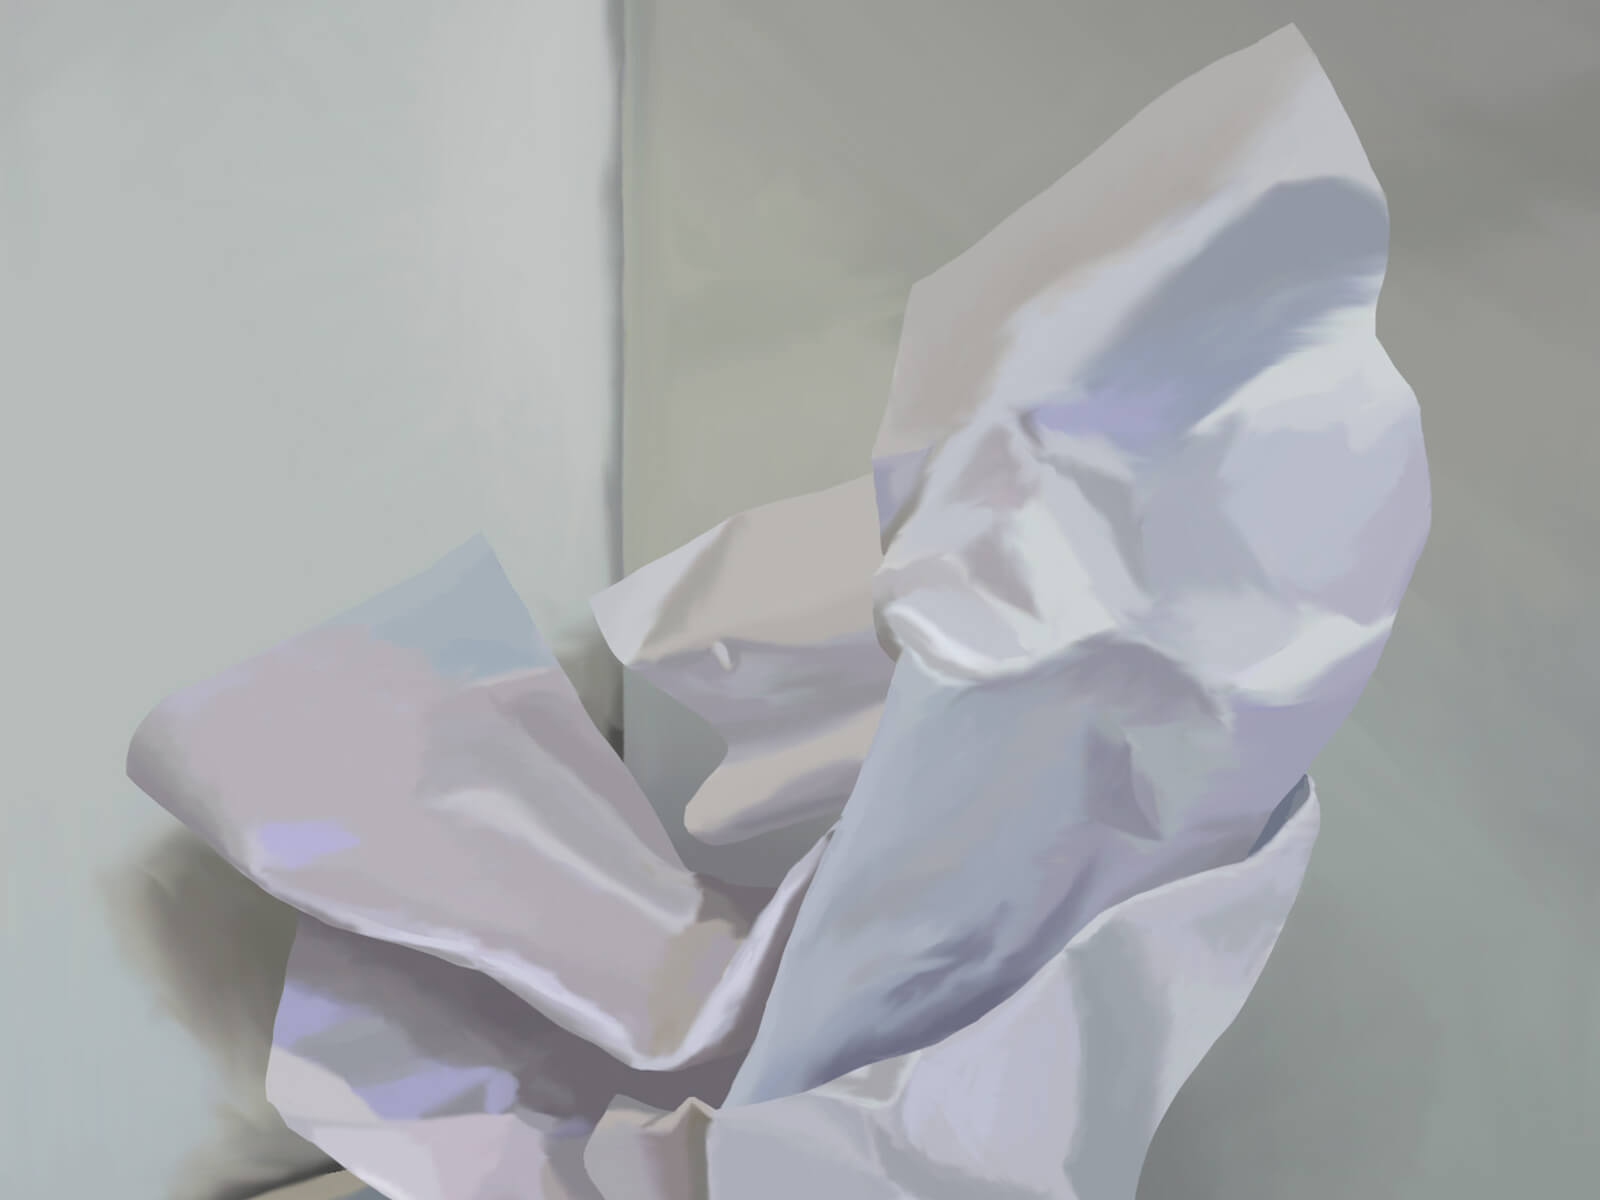 still-life traditional painting of a crumpled piece of white paper